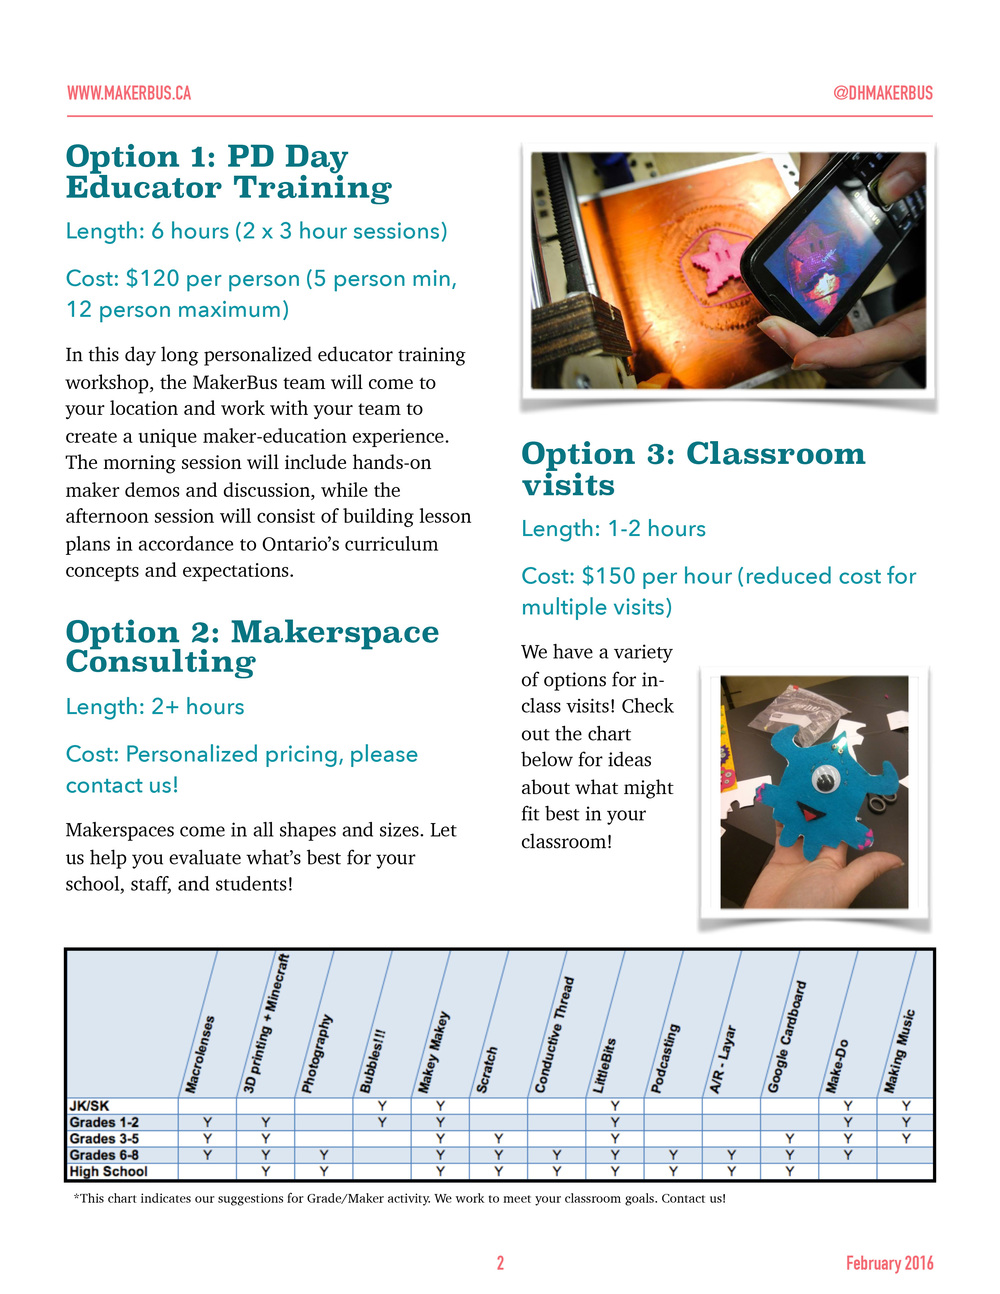 MakerBus School Pamphlets-2.jpg